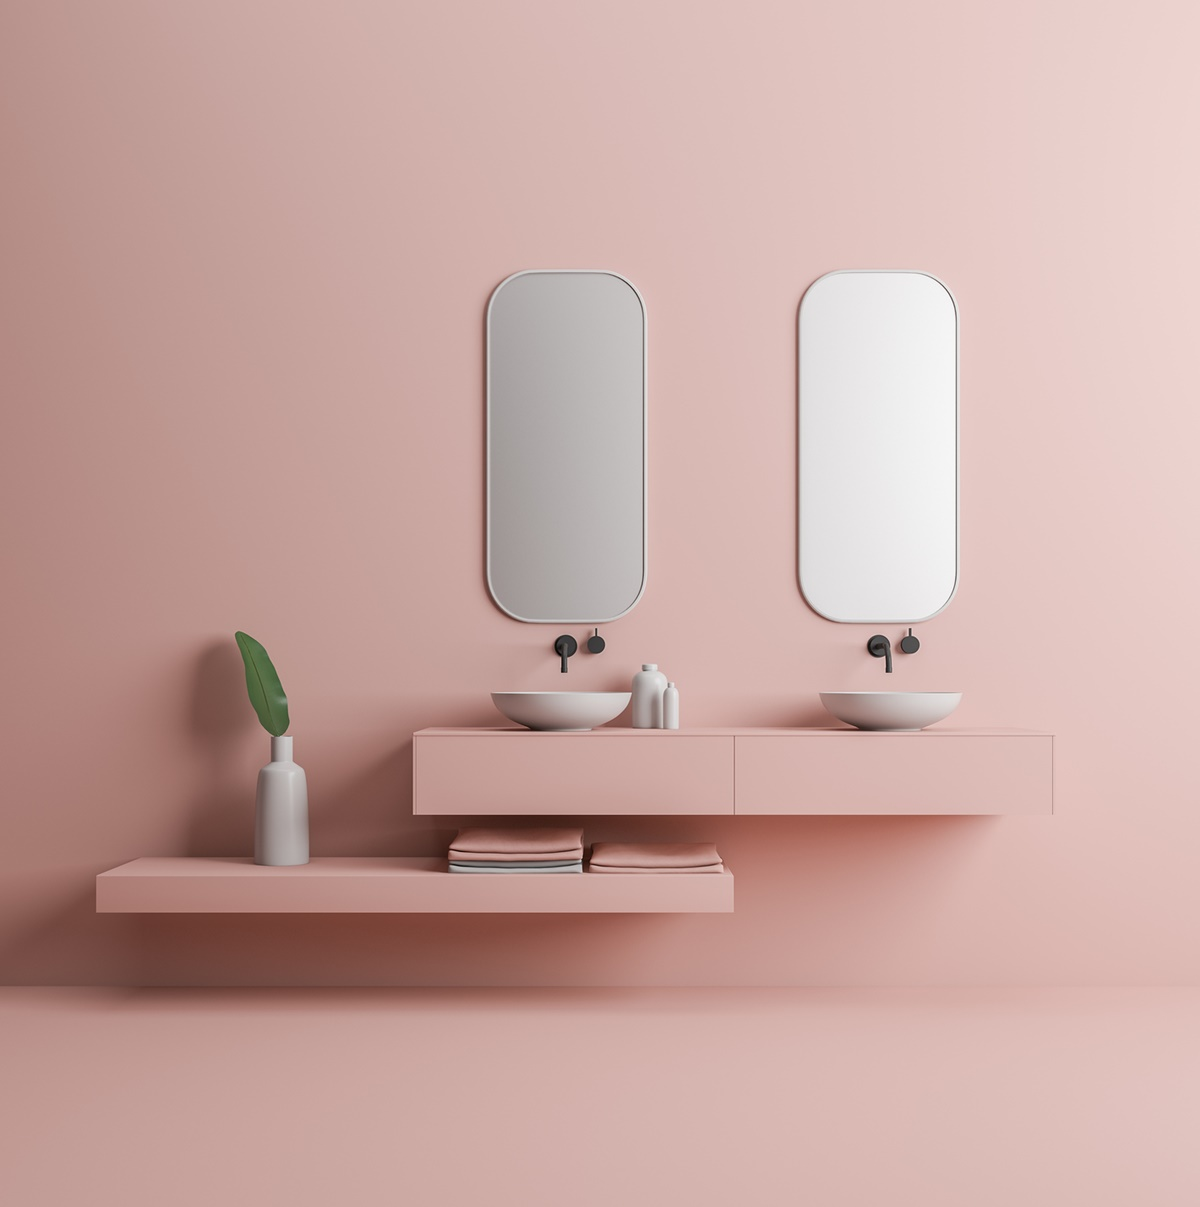 Minimalist pink bathroom